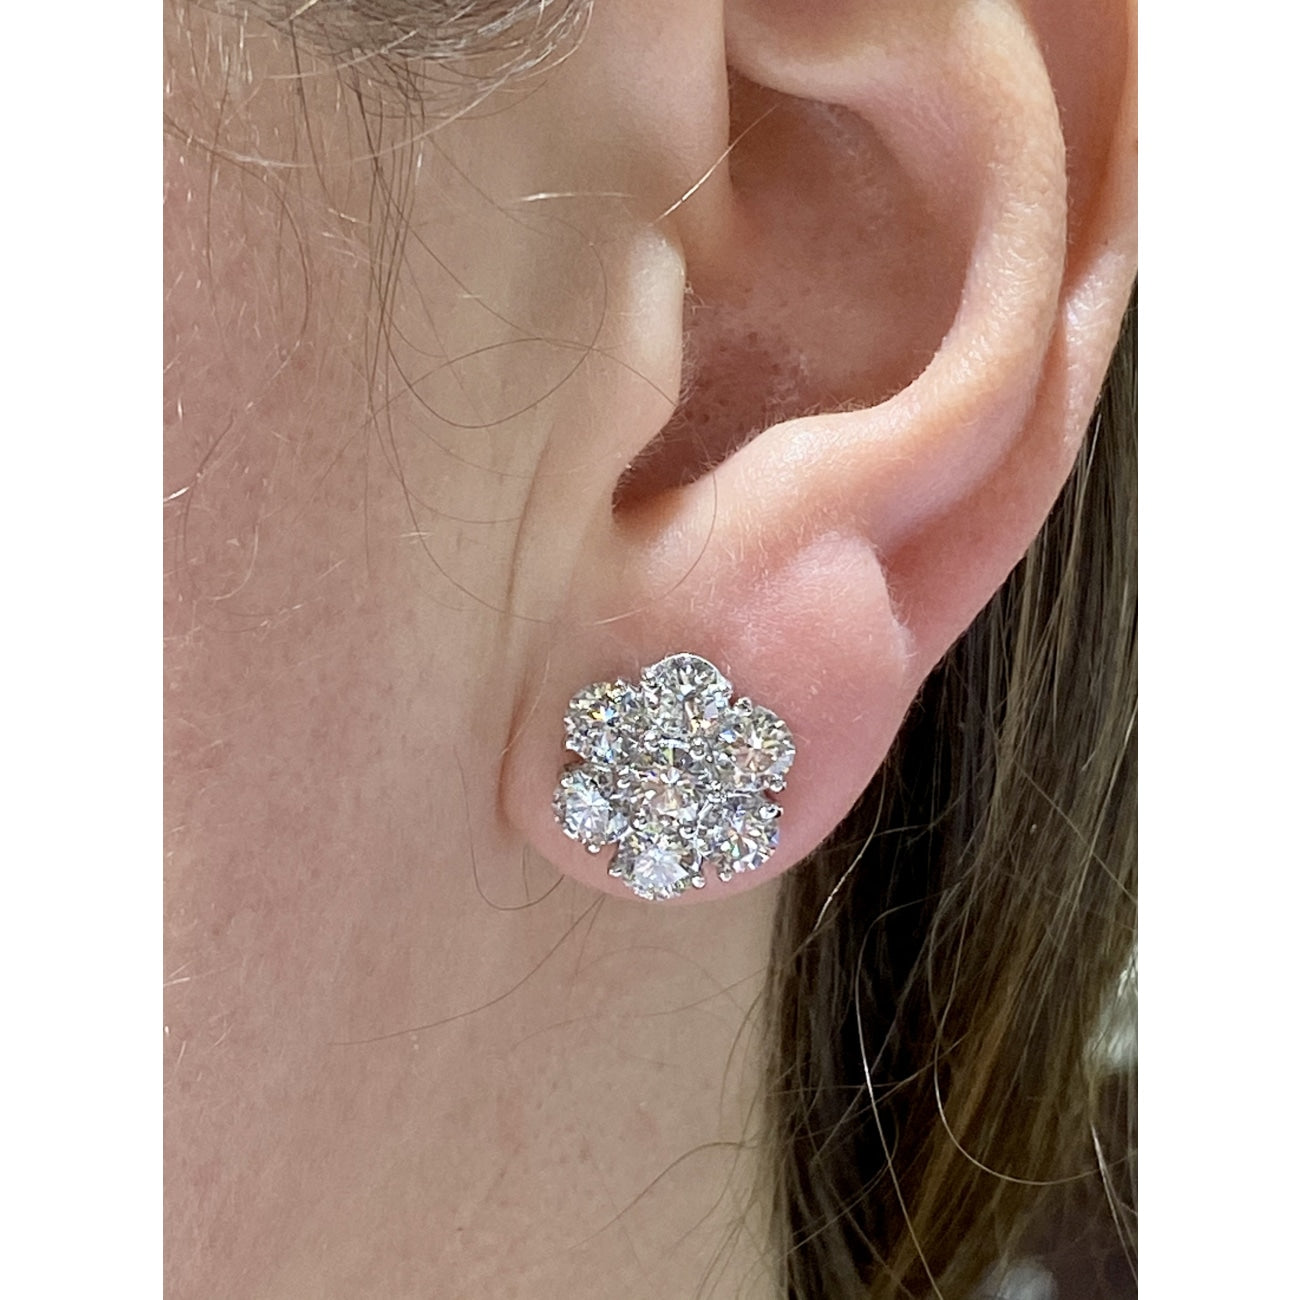 Estate Jewelry Estate Jewelry - Diamond Cluster White Gold Stud Earrings | Manfredi Jewels